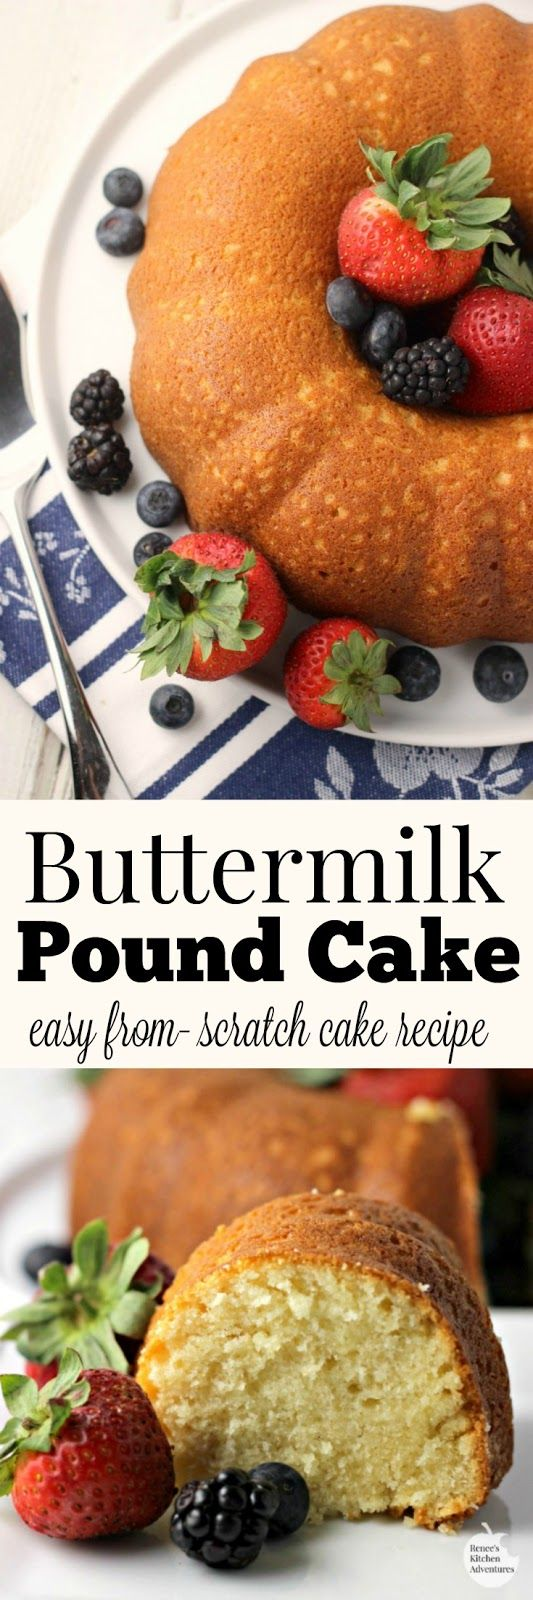 Buttermilk Pound Cake | by Renee's Kitchen Adventures - easy recipe for a made from scratch vanilla buttermilk pound cake perfect for dessert or snacks #SundaySupper